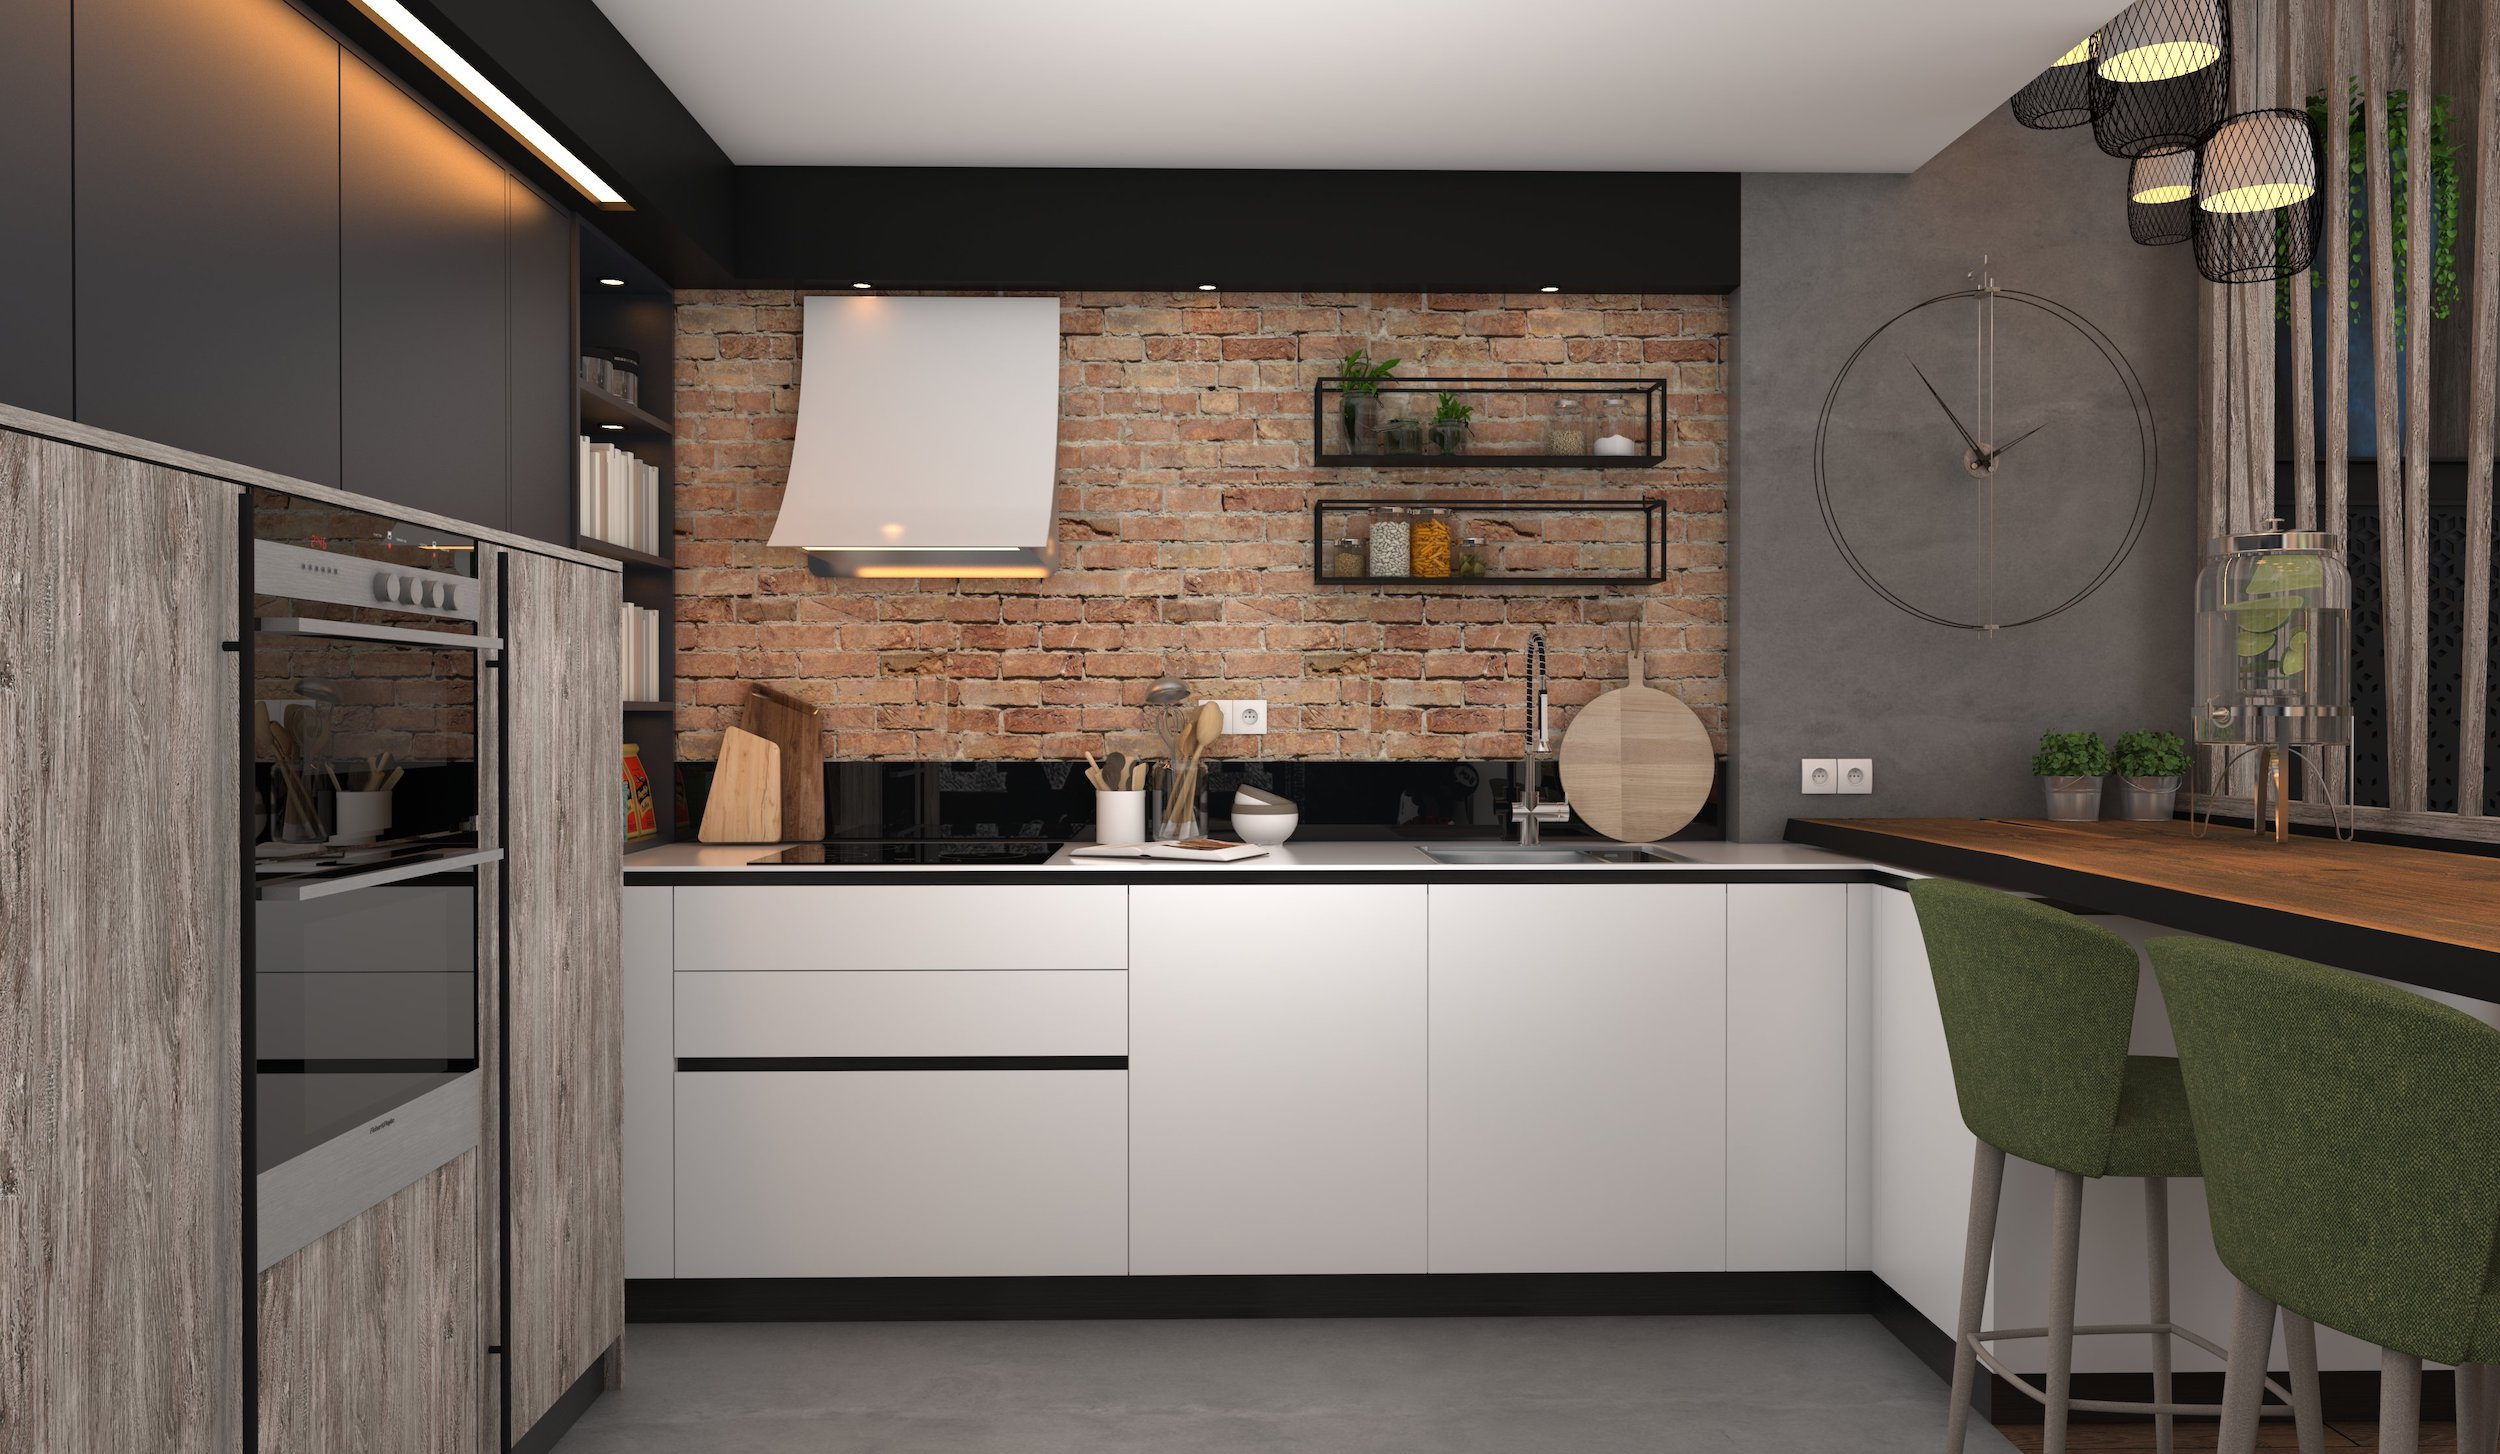 Renovation-architecture-loft-94-small-3